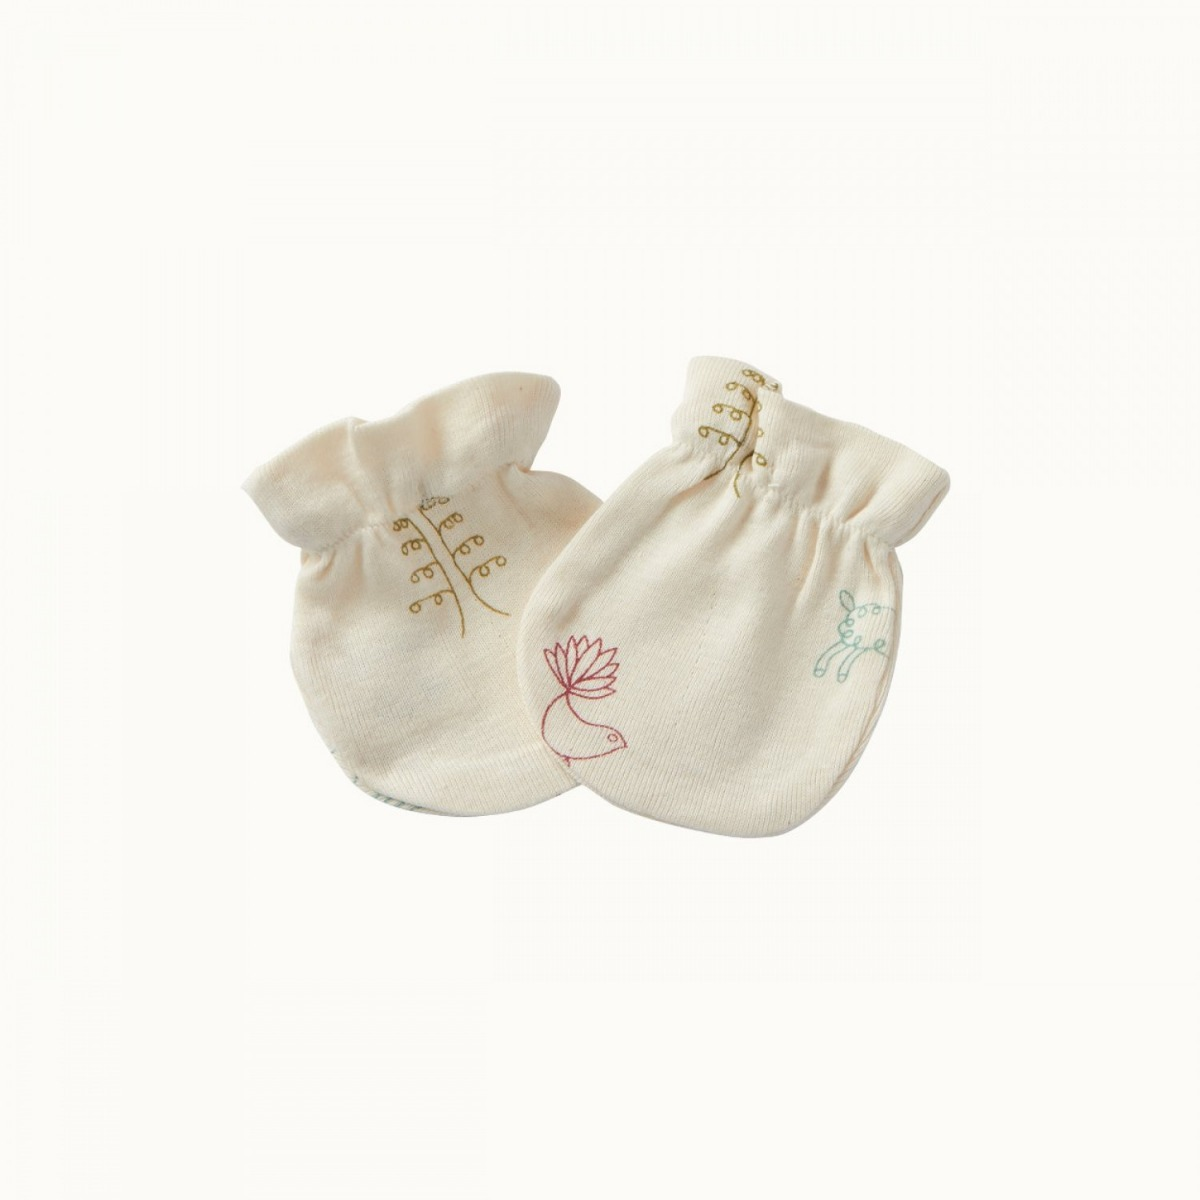 Nature Baby Organic Cotton Newborn Scratch Mittens with Print 0-3M